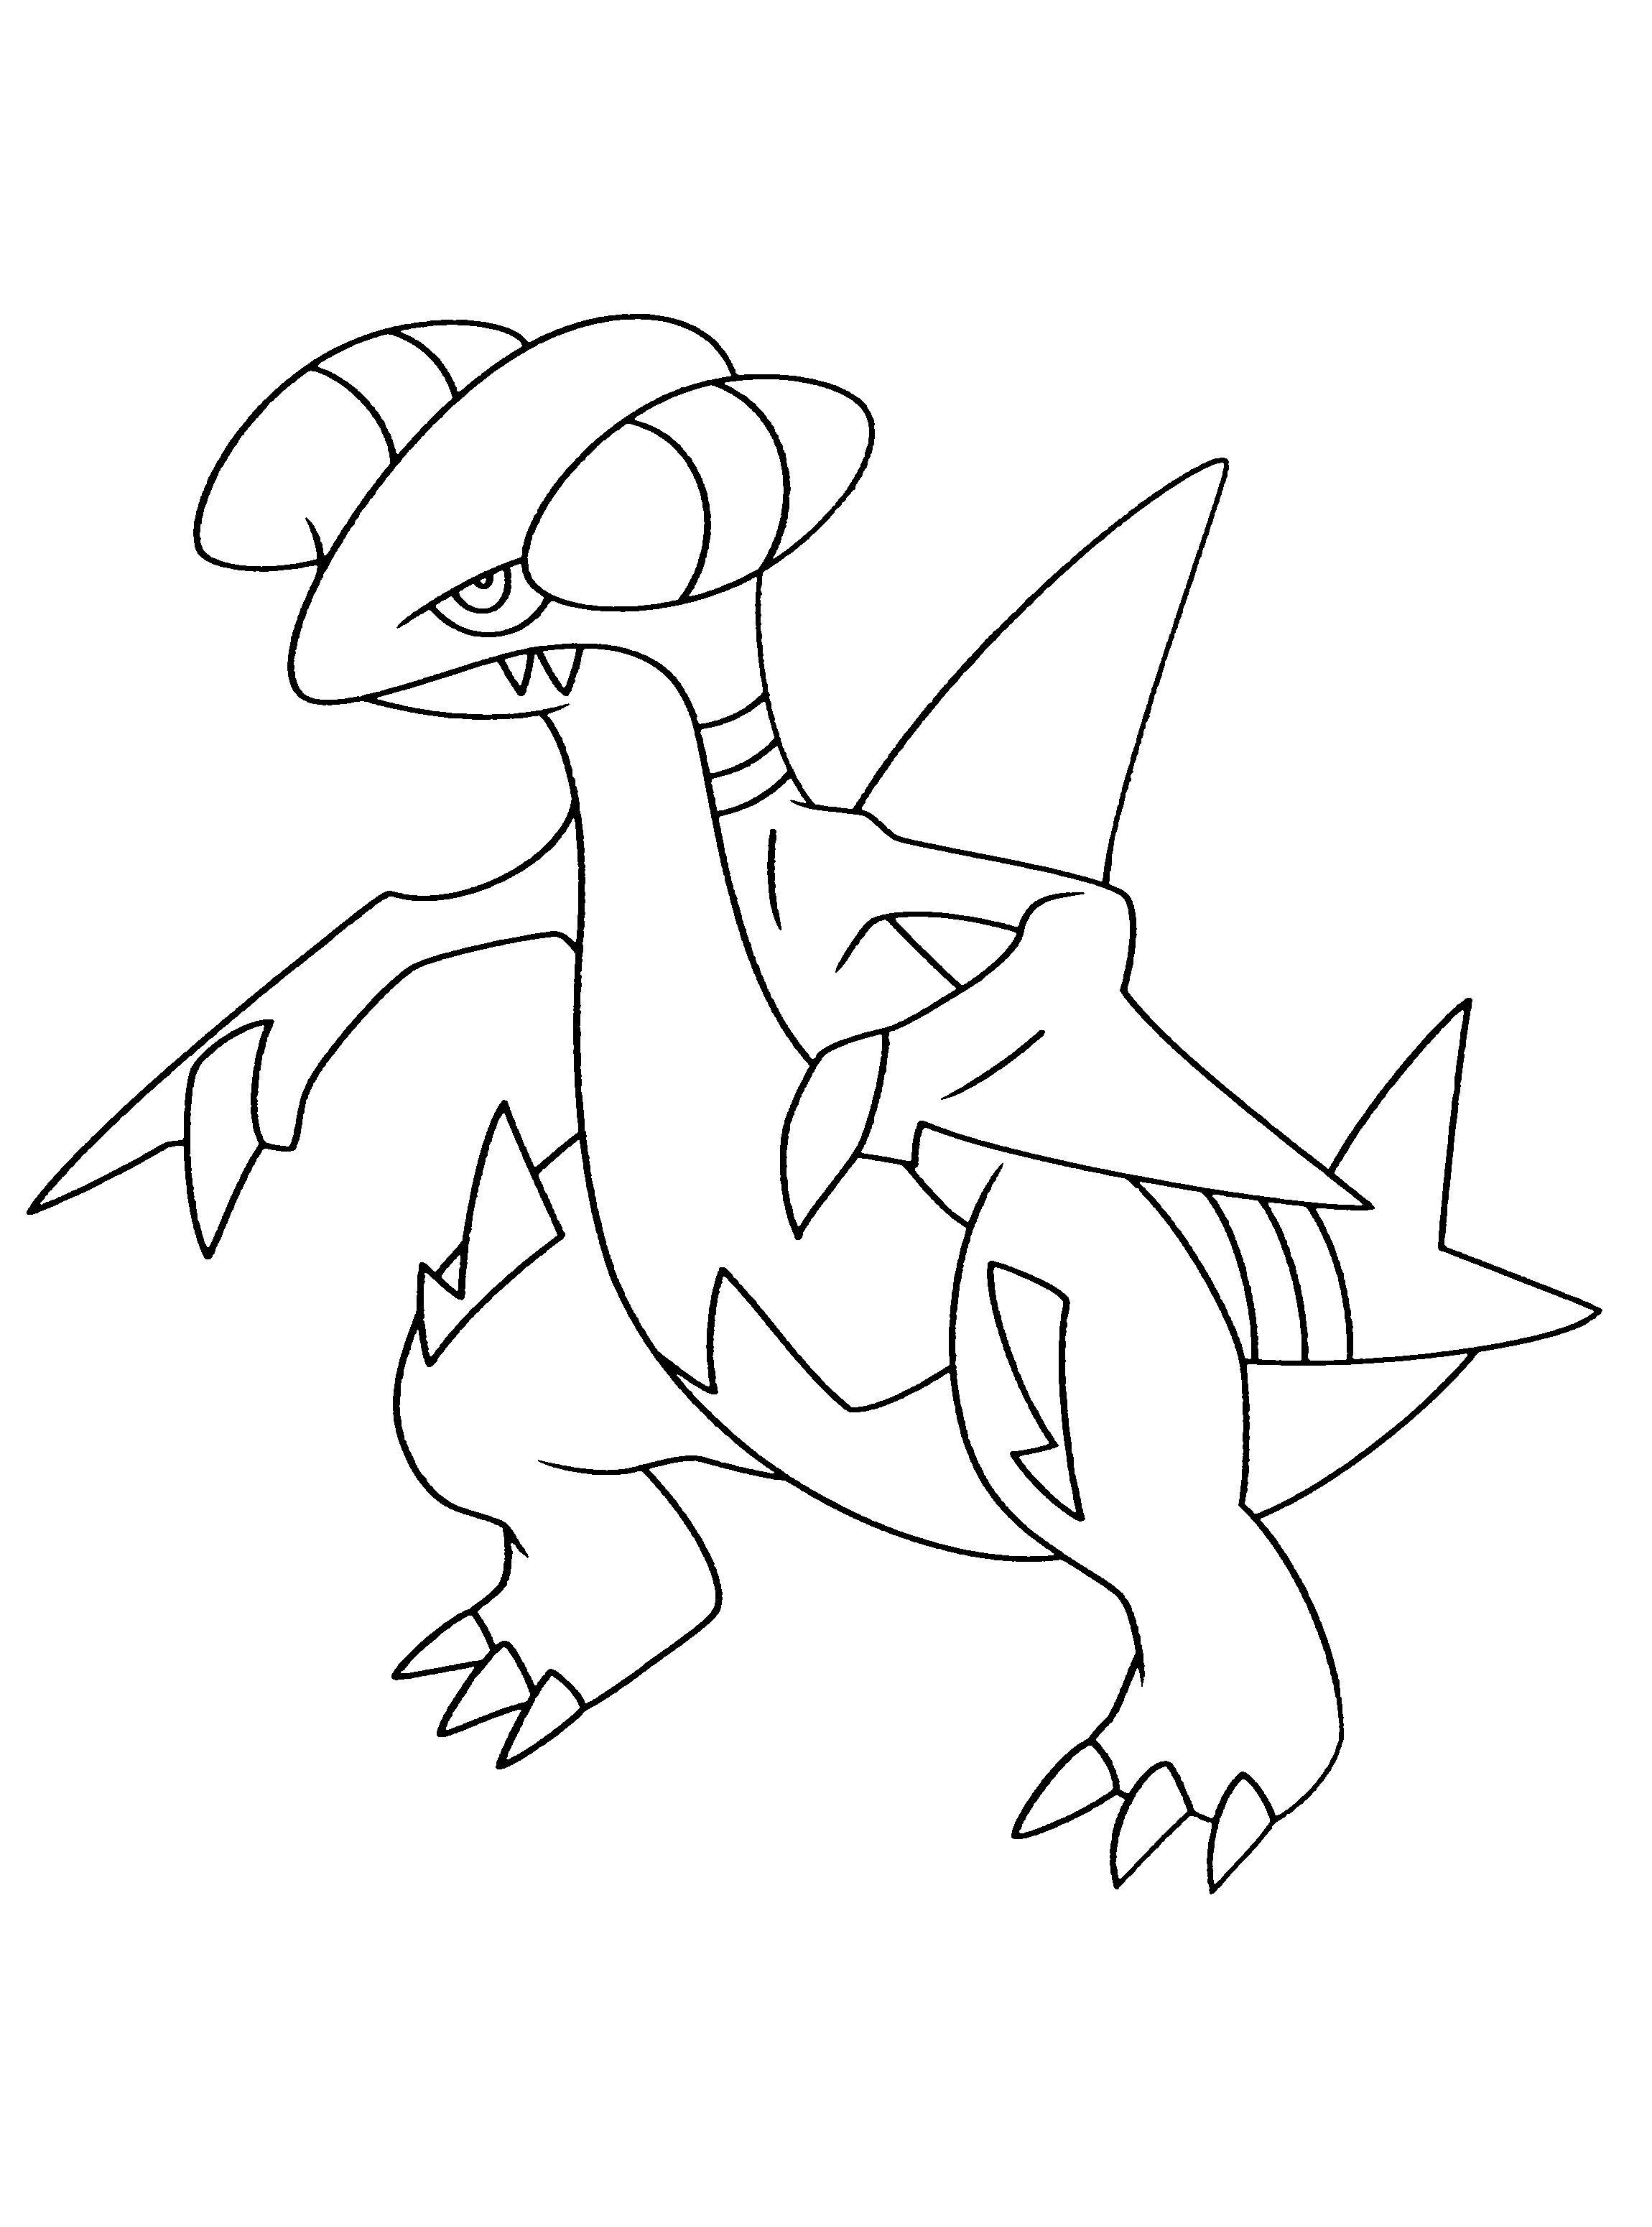 Legendary Pokemon Coloring Pages New Ausmalbilder Mandala Pokemon Pokemon Coloring Pages Pokemon Coloring Coloring Pages